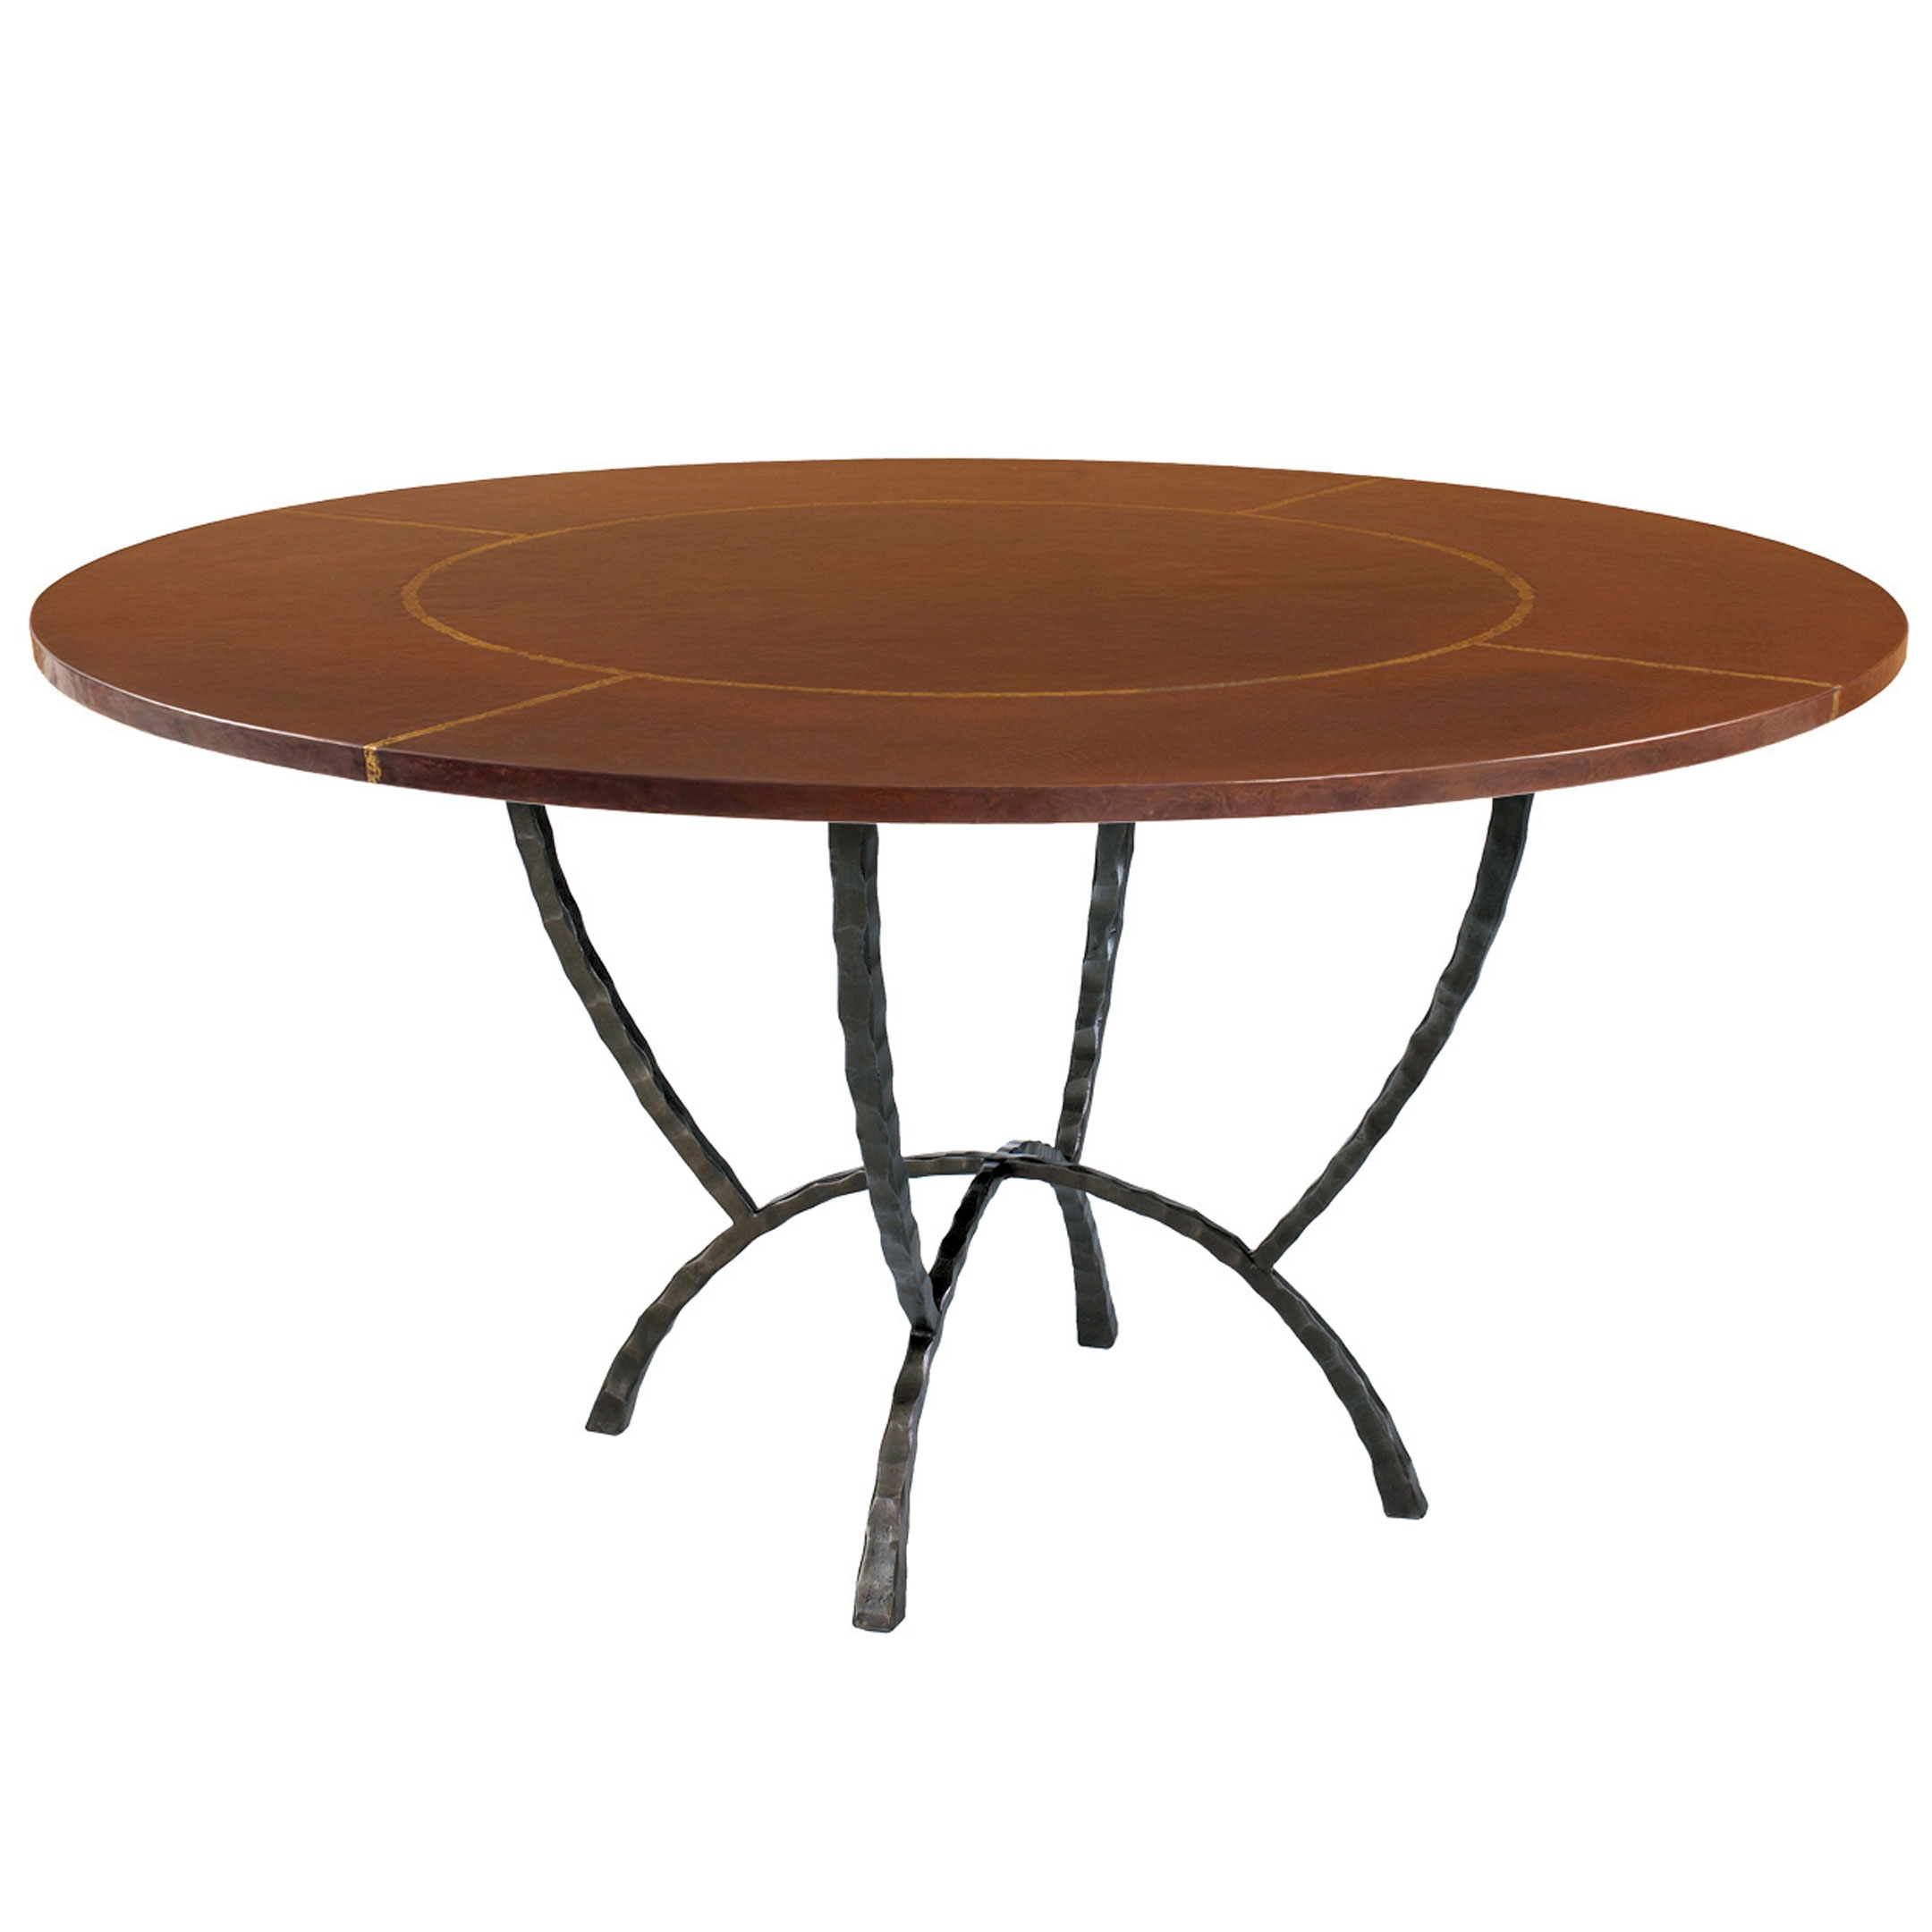 Home > Tables > Dining Tables > Round Dining Tables >